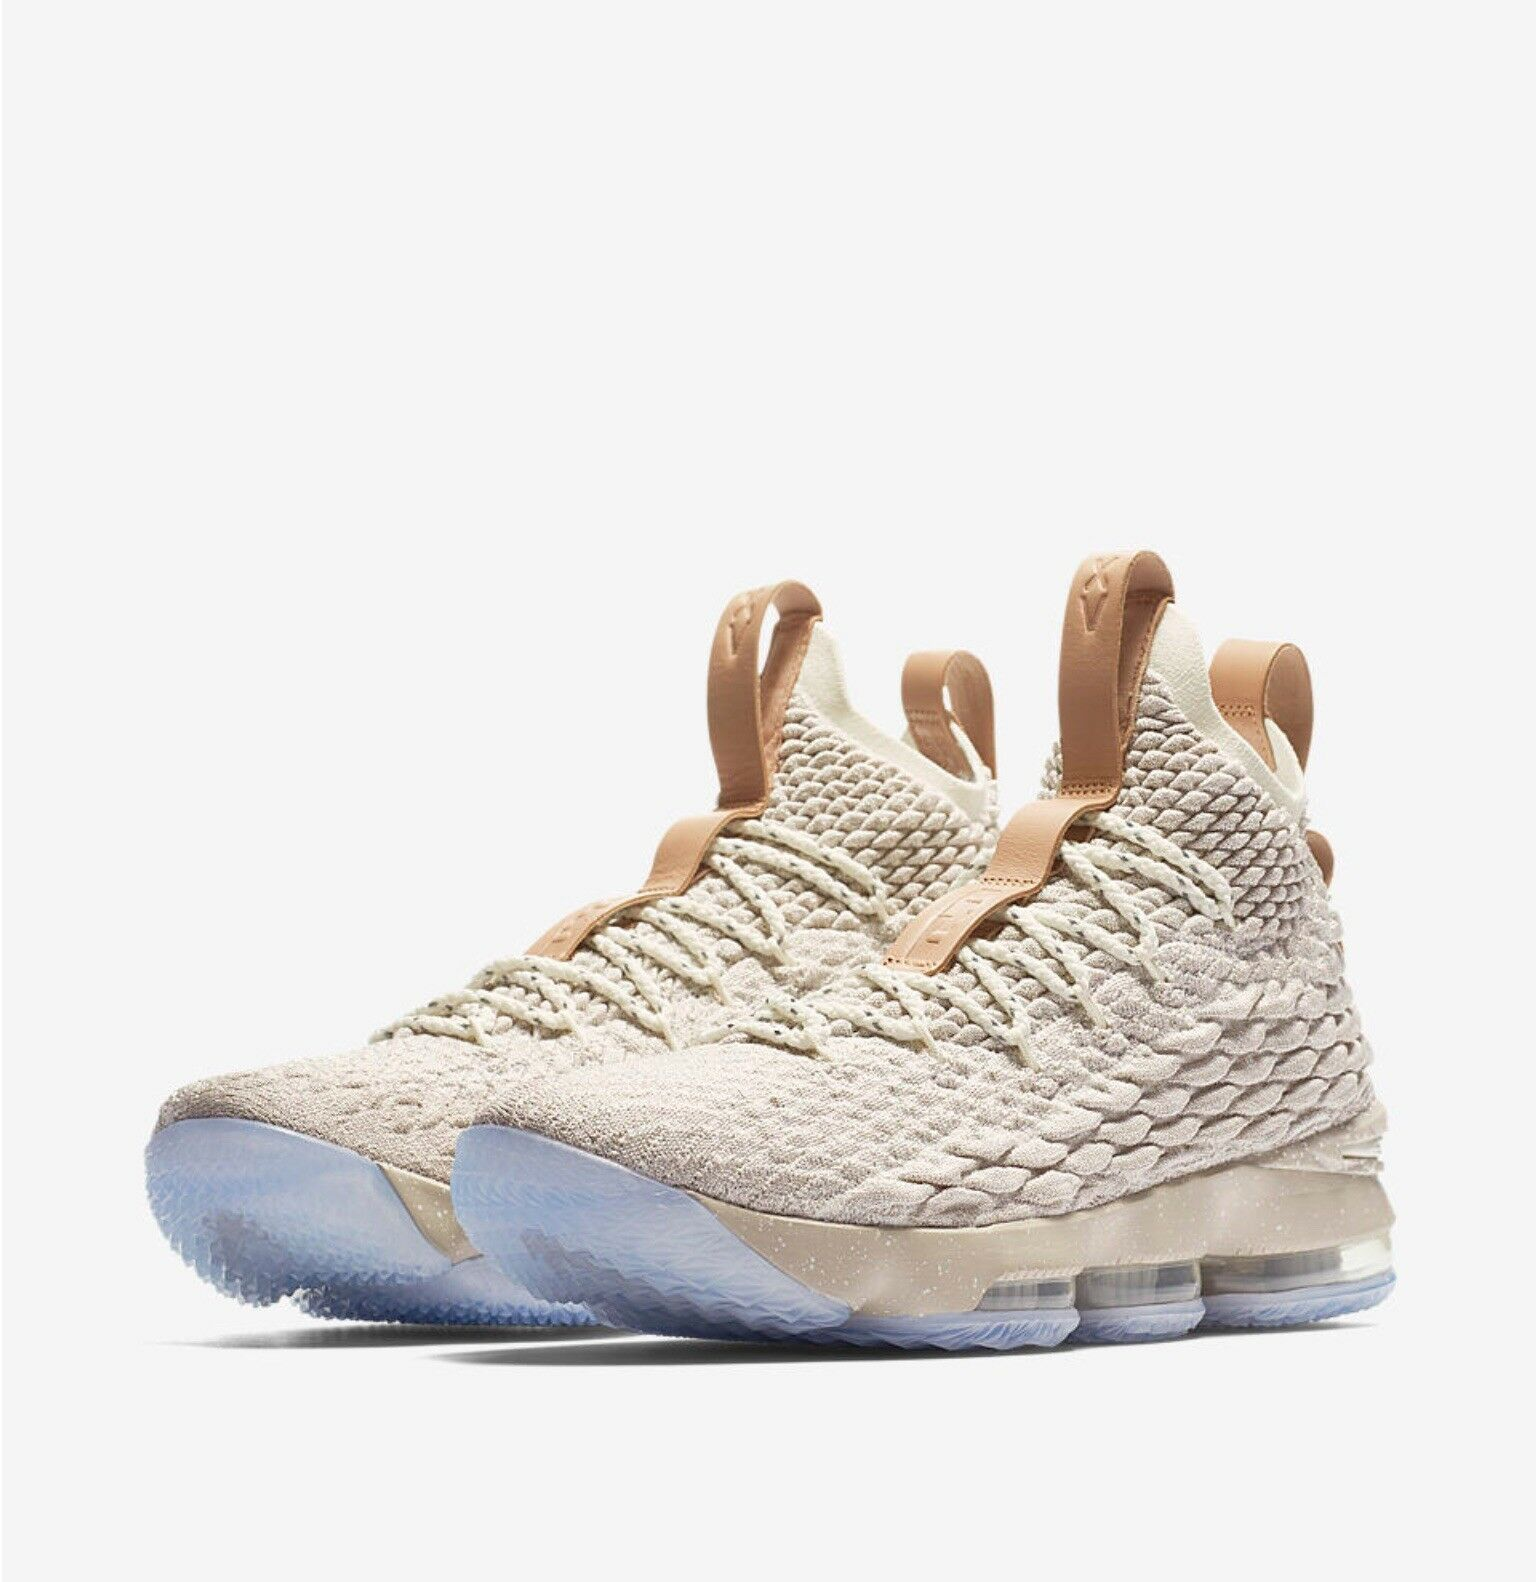 NEW AUTHENTIC NIKE LEBRON 15 GHOST SIZE 8.5  DEAD STOCK